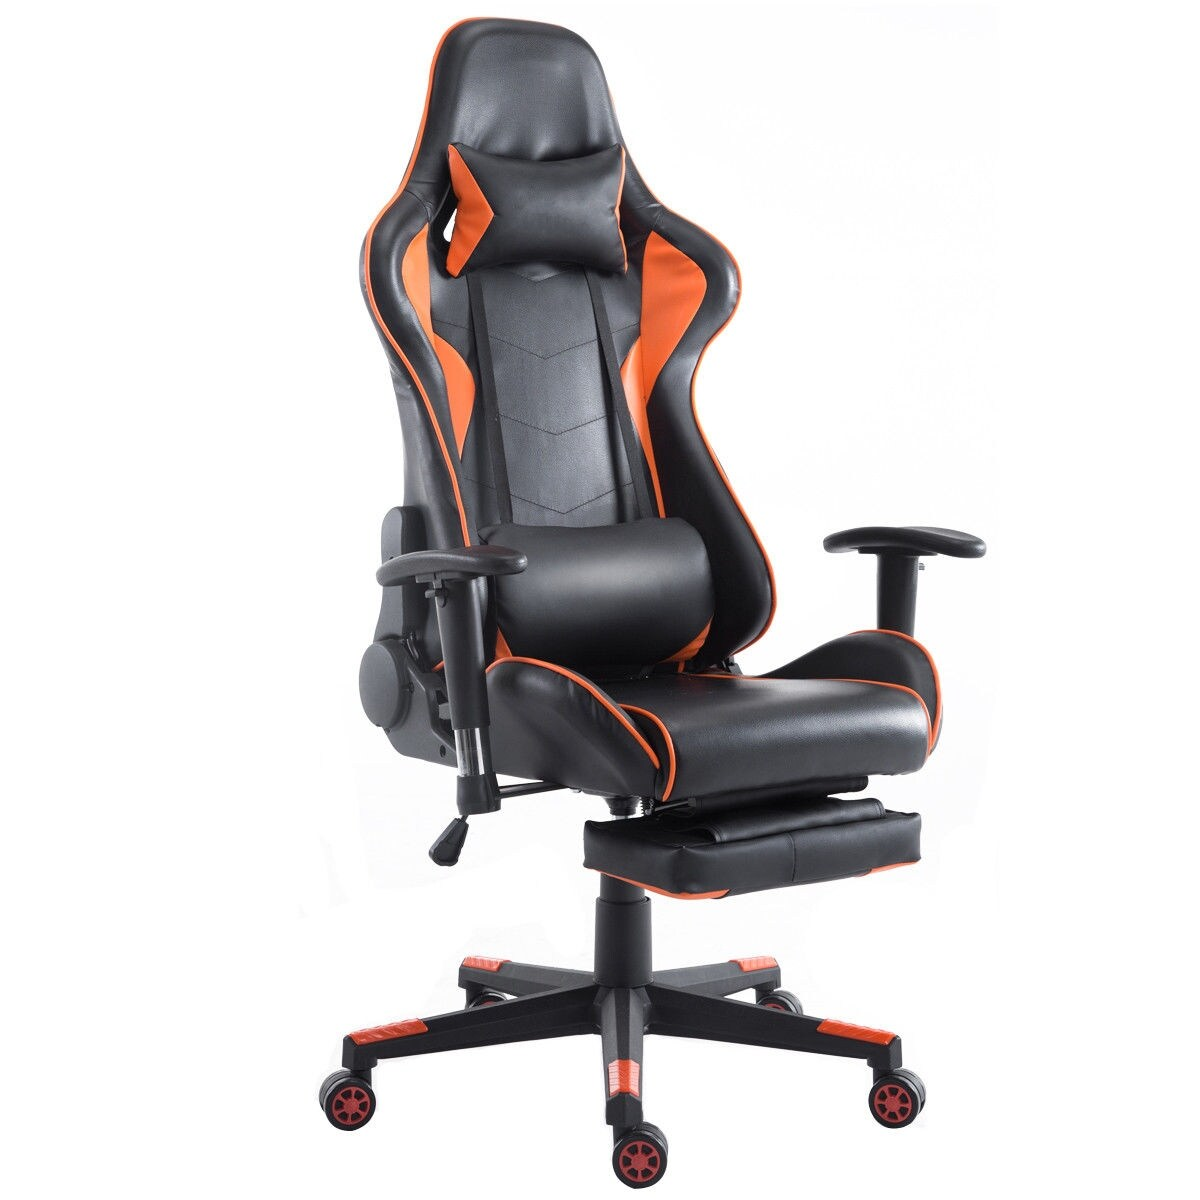 reclining gaming chair hancock and moore chairs shop costway high back racing recliner office w lumbar support footrest orange black